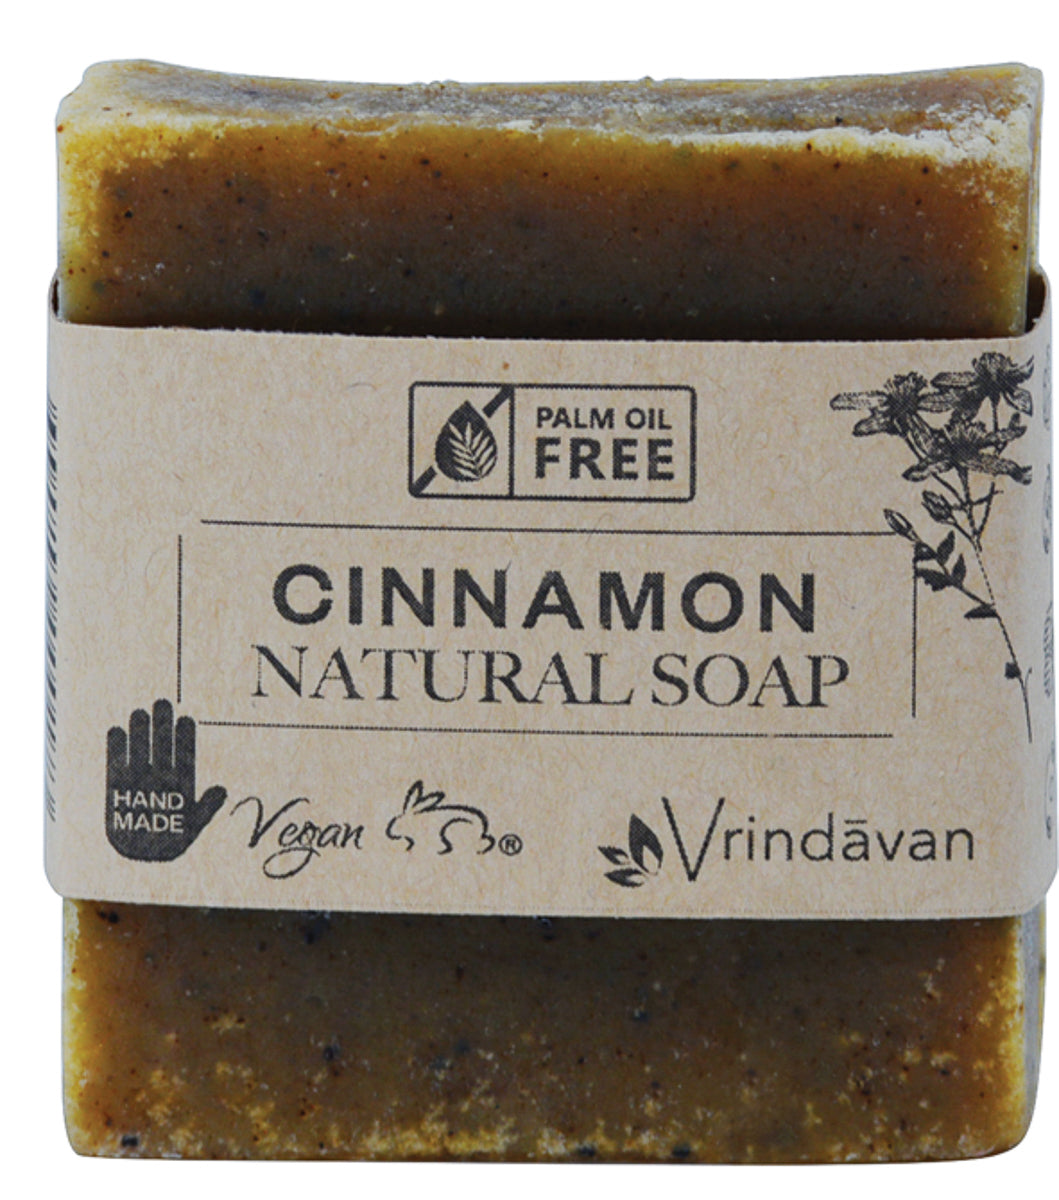 Cinnamon Square Soap